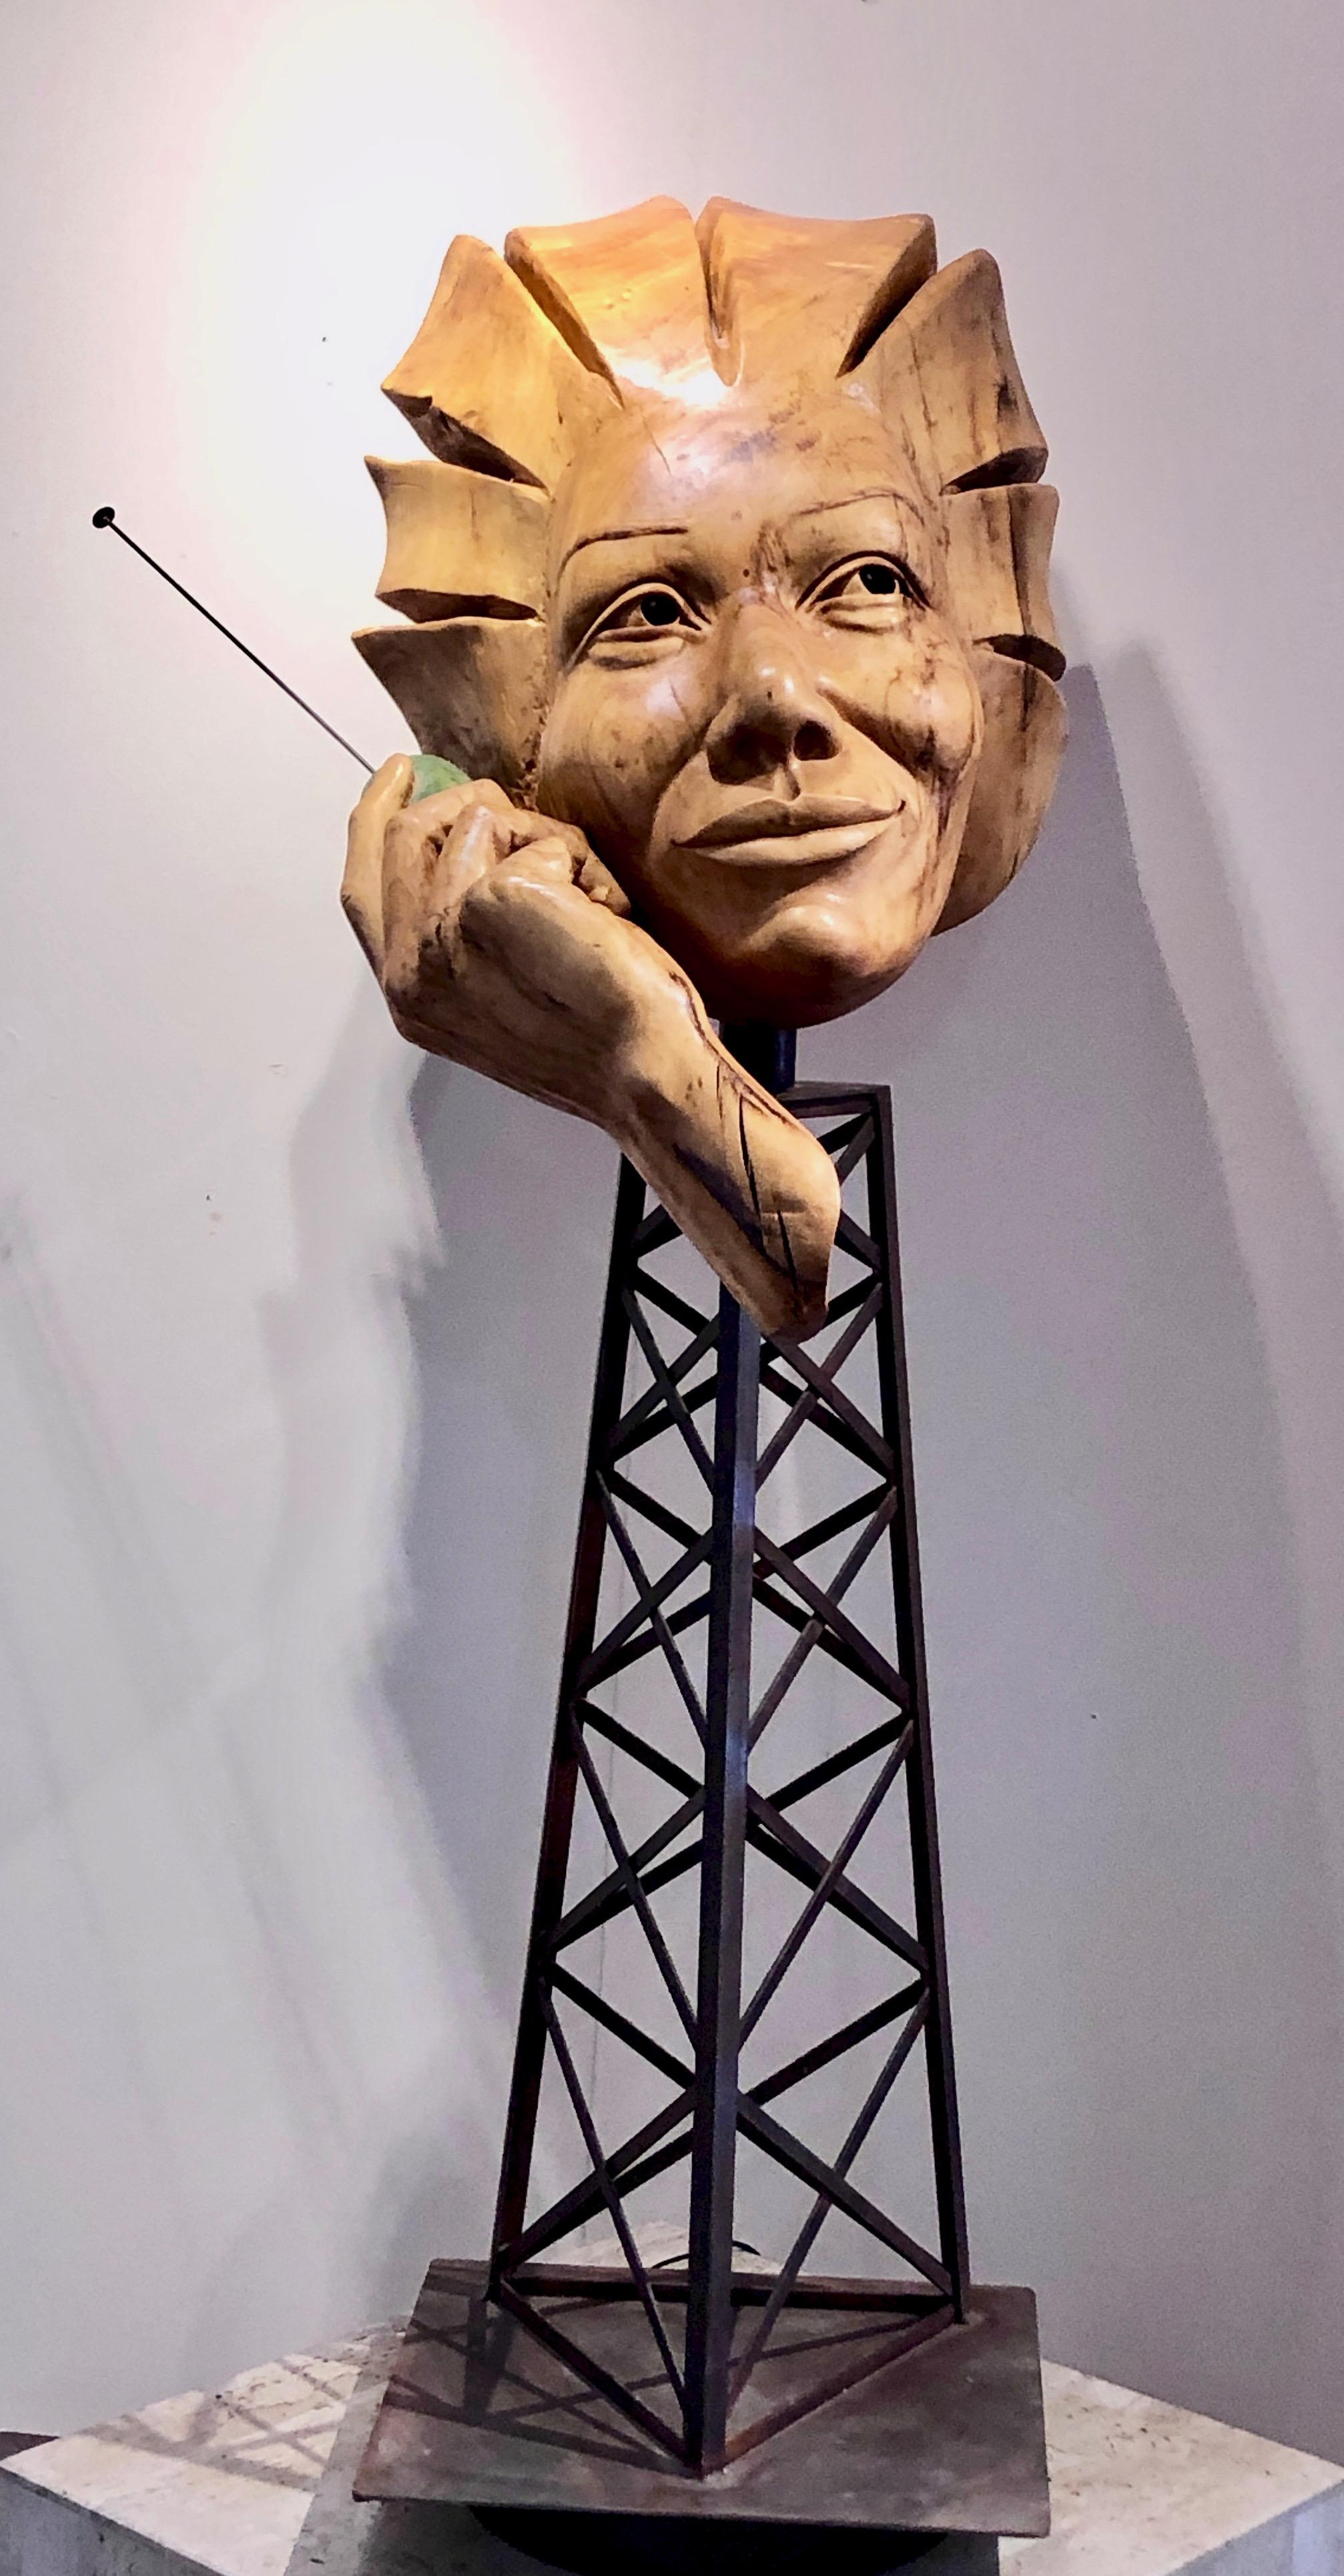 Disconnect, wood sculpture by Troy Williams, telephone, cell phone tower, steel